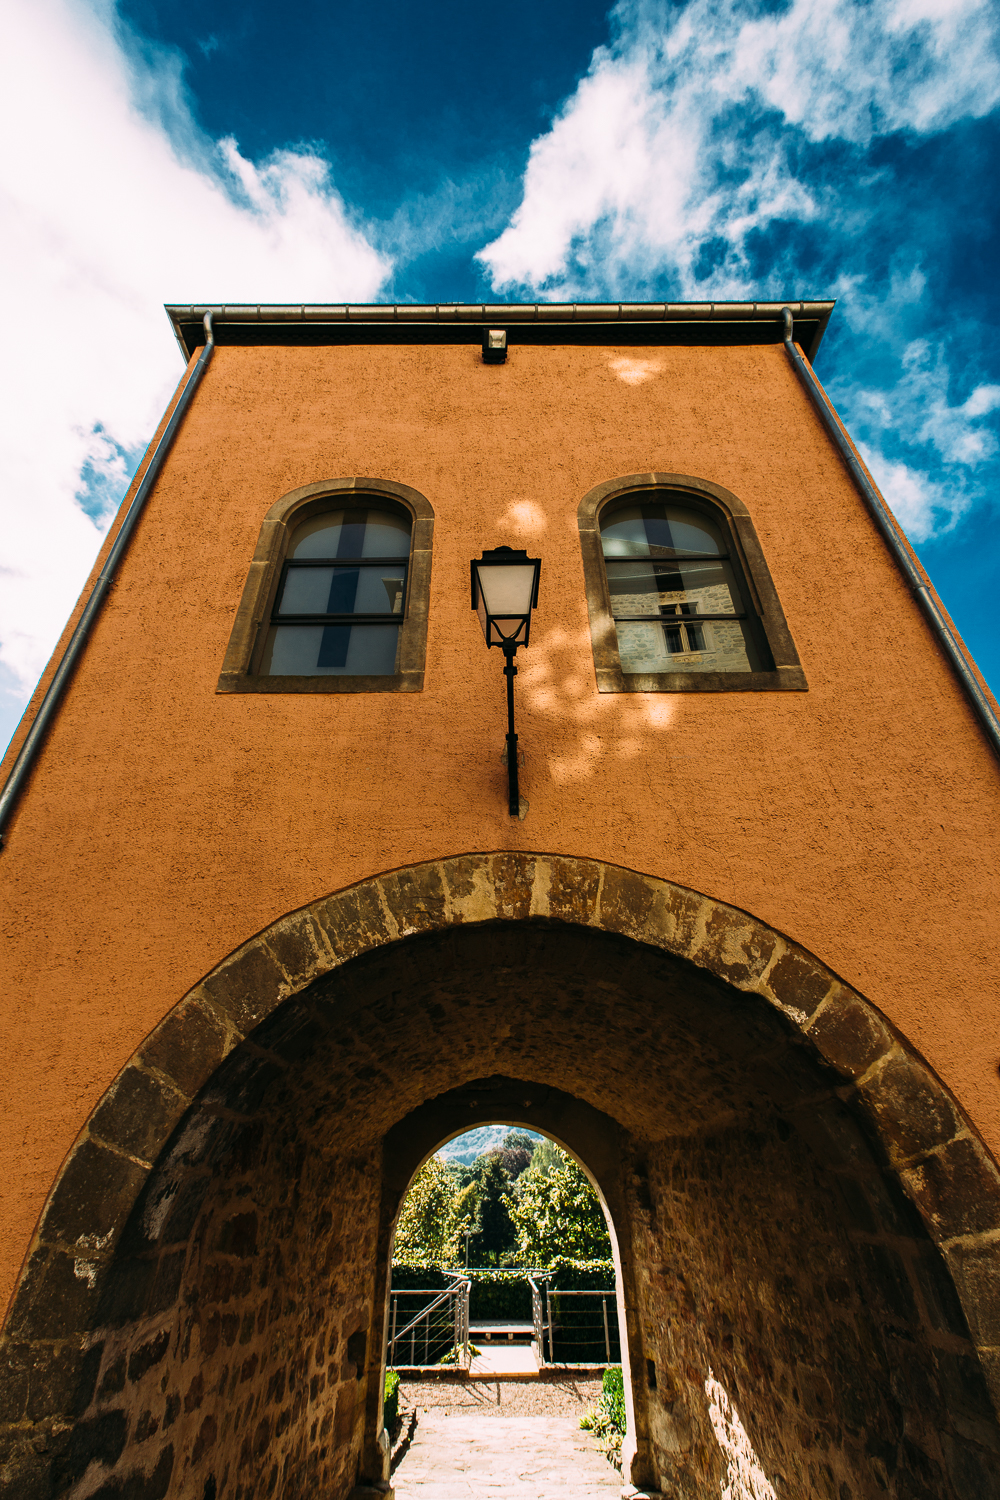 20140819 - Location Scouting-6.jpg